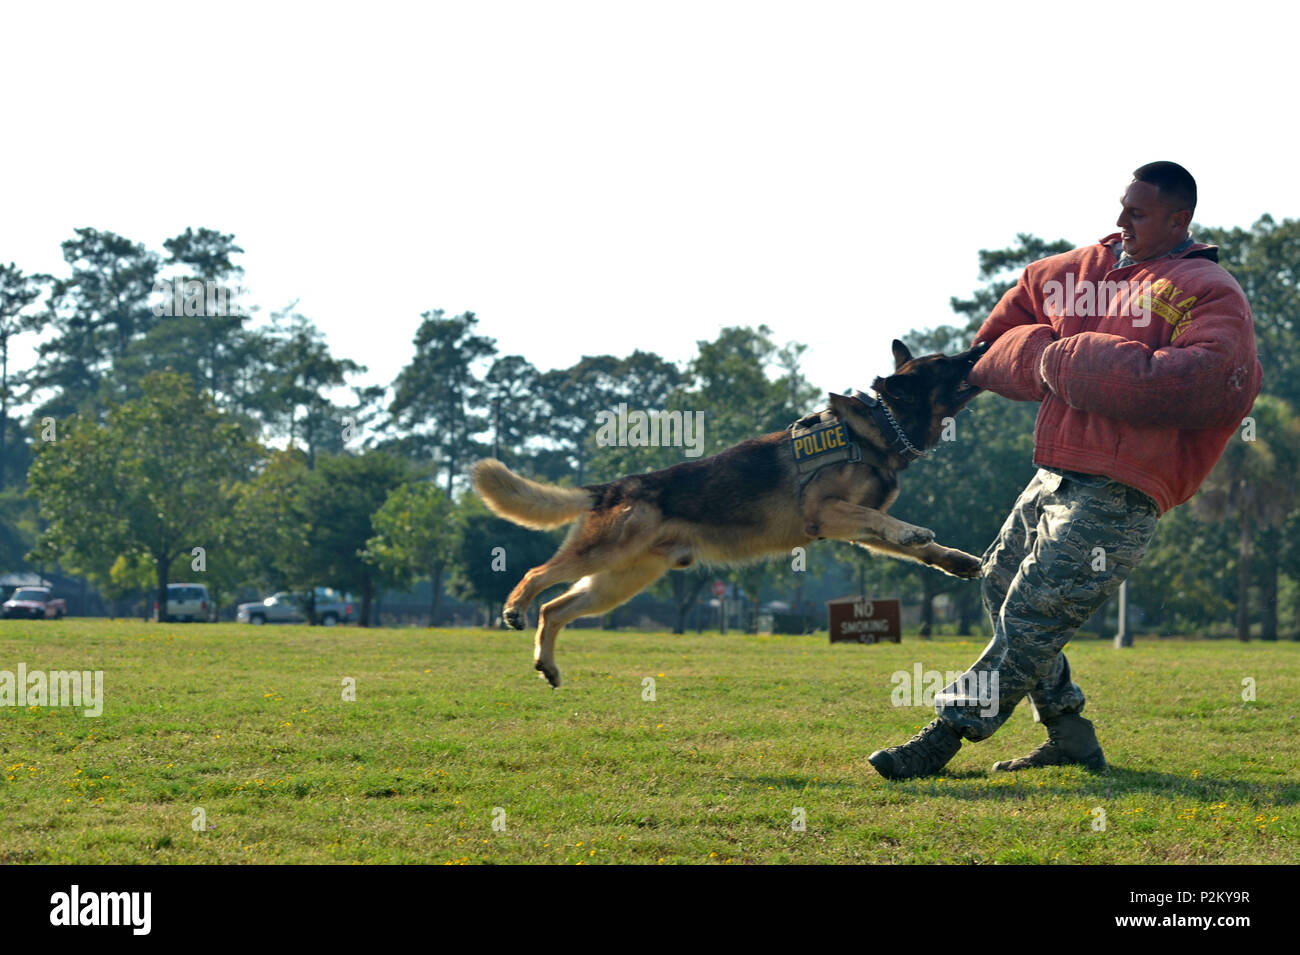 """U.S. Air Force Staff Sgt. David Mussio, 20th Security Forces Squadron military working dog handler, performs a MWD demonstration during a """"Defender for a Day"""" event at Shaw Air Force Base, S.C., Sept. 9, 2016. Airmen assigned to the 20th SFS showcased their duties for Jake Pritchard, 20th SFS honorary defender, and his family. (U.S. Air Force photo by Airman 1st Class Christopher Maldonado) - Stock Image"""